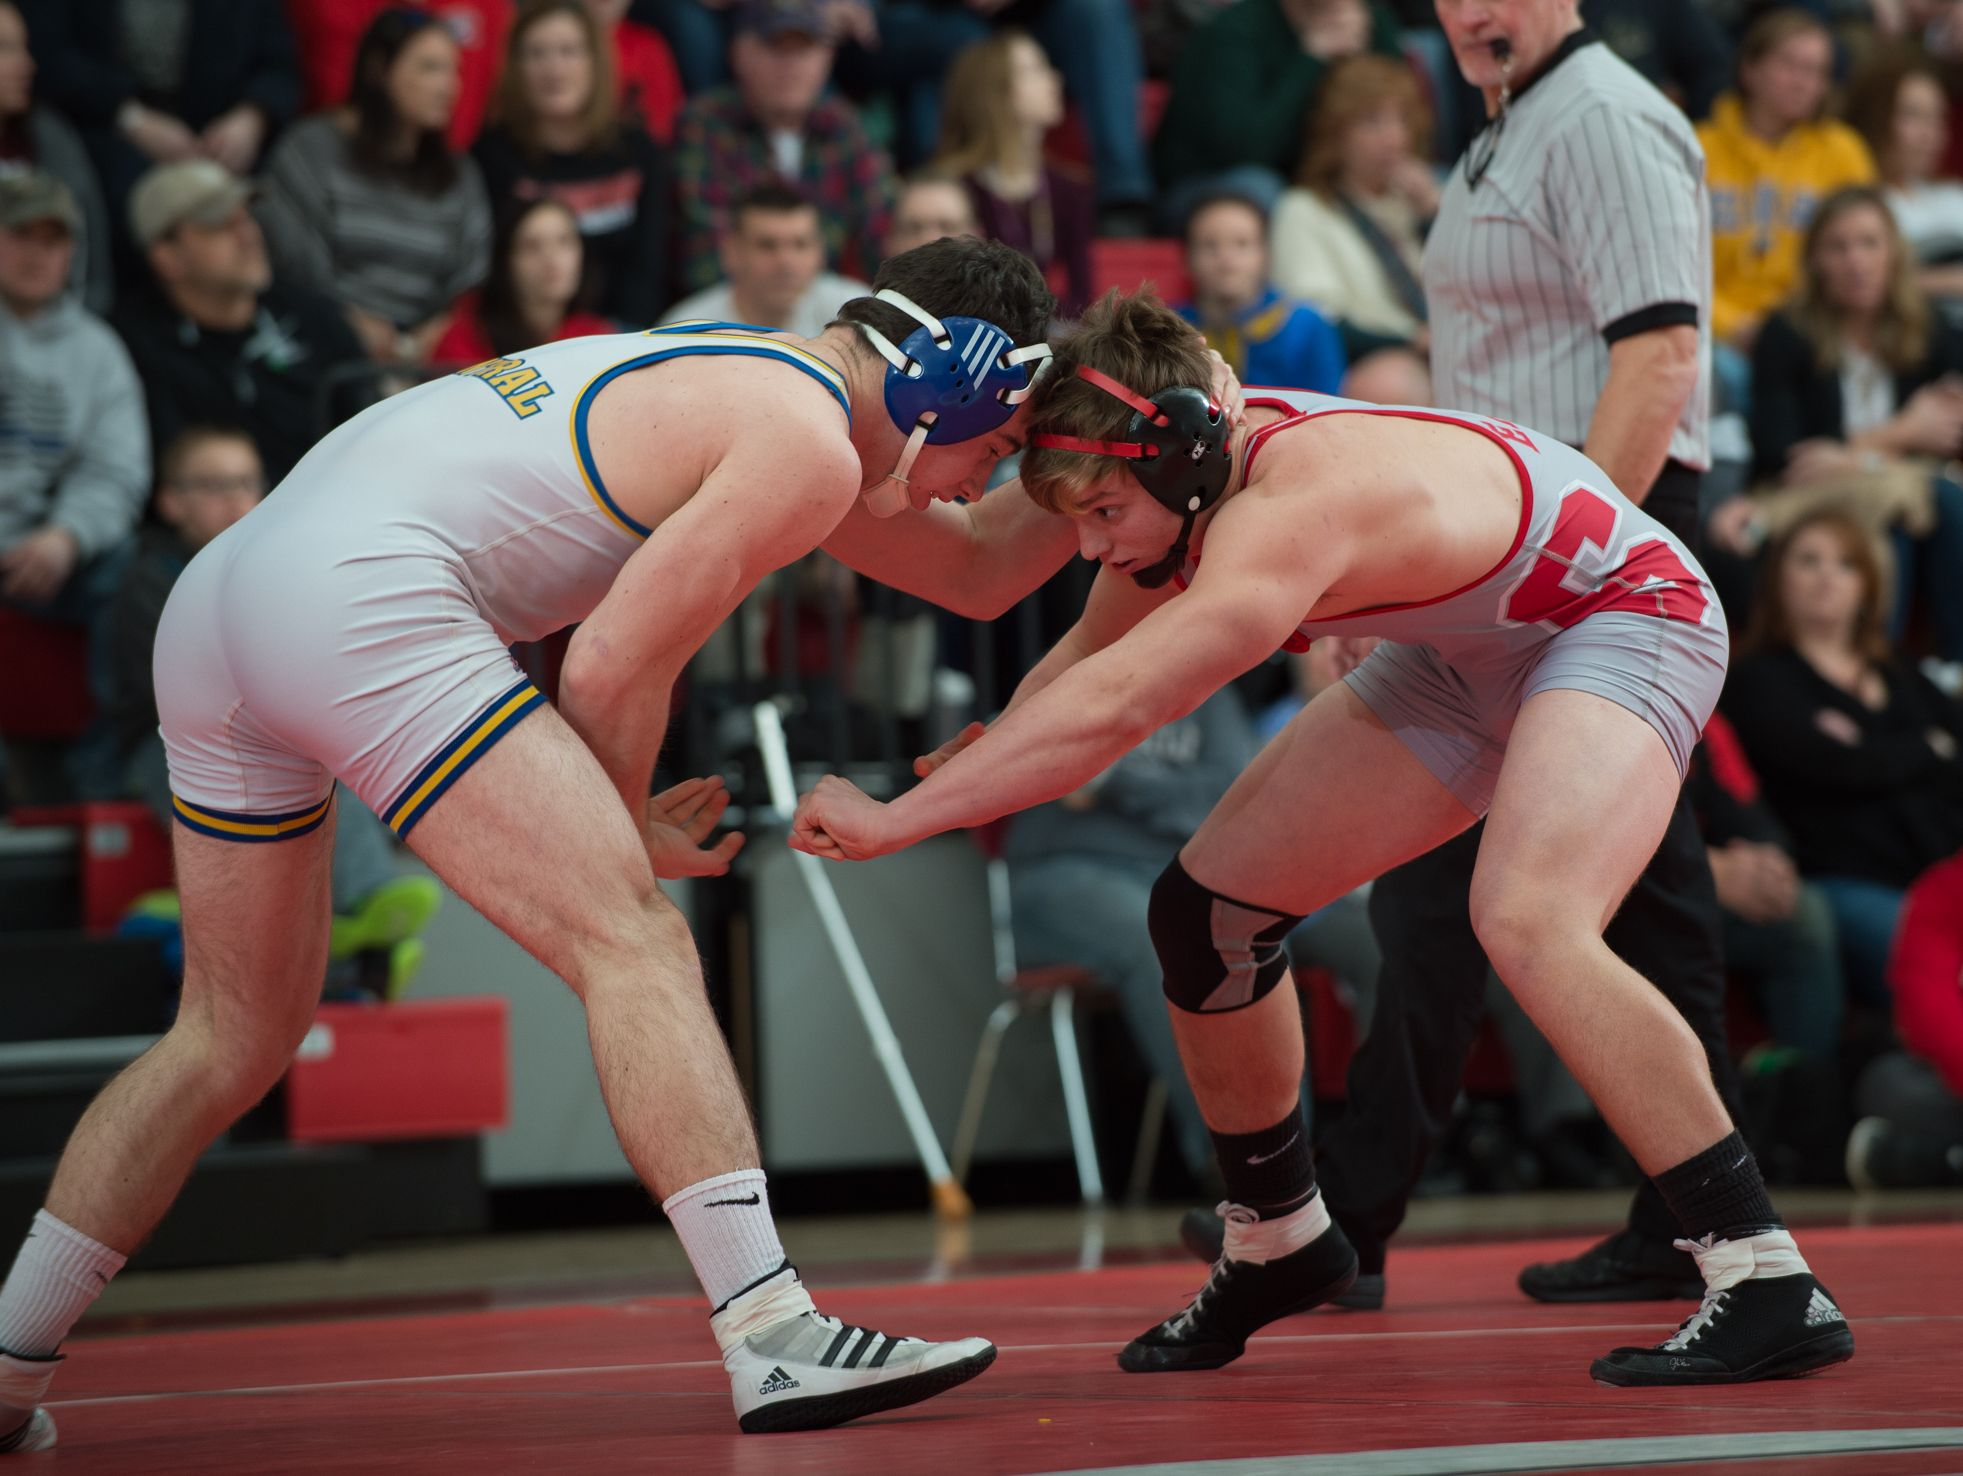 Sussex Central's Lucas Hudson, left, and Smyrna's Hunter Moyer battle for position in the 182 pound match at Smyrna High School. Smyrna defeated Sussex Central 39-27.